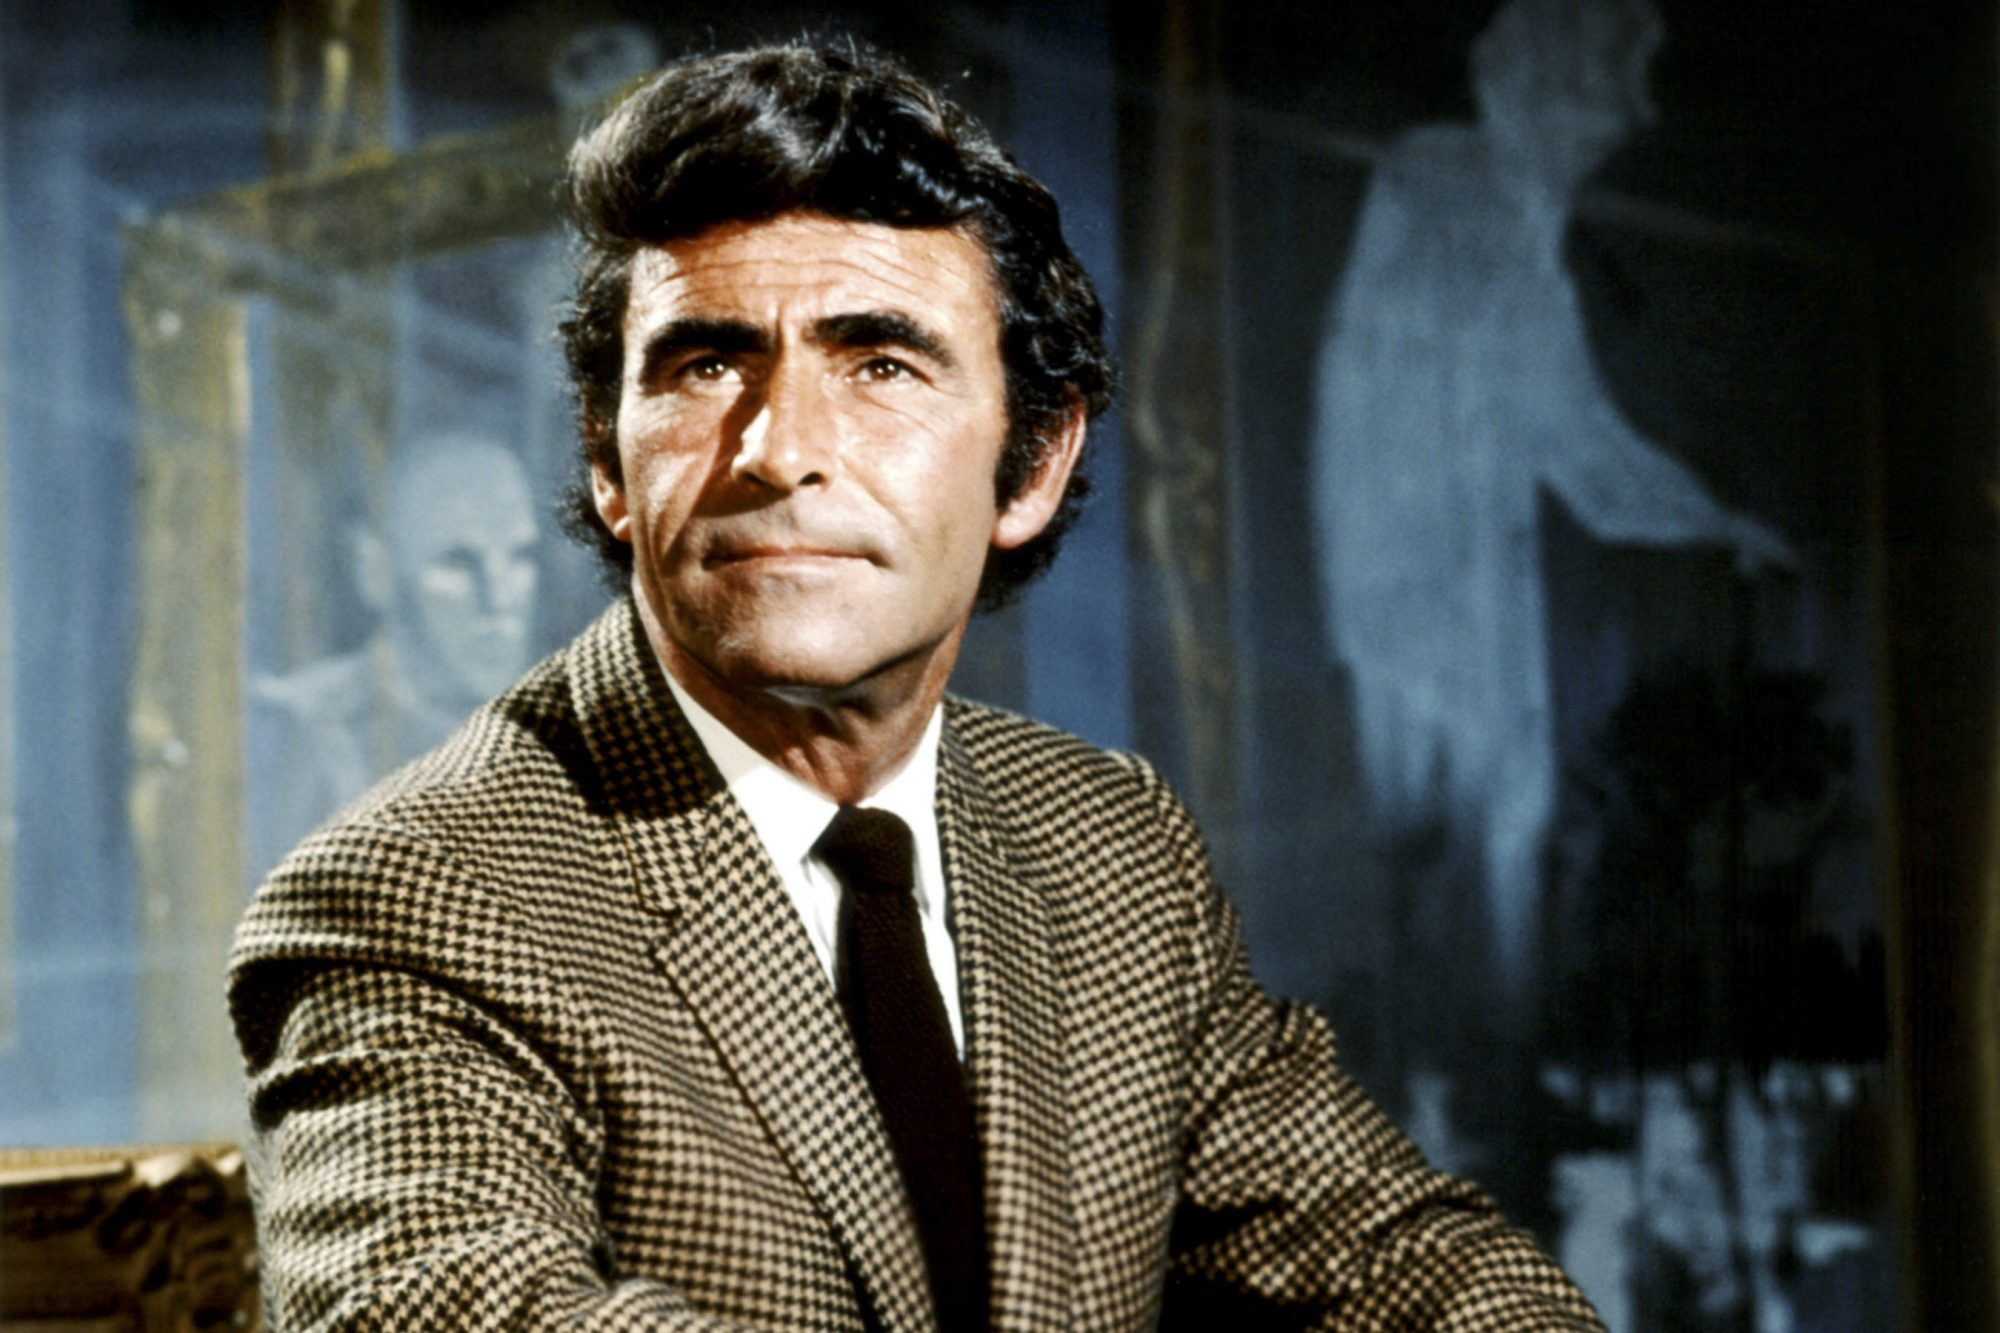 NIGHT GALLERY (aka ROD SERLING'S NIGHT GALLERY), host Rod Serling, 1970-73